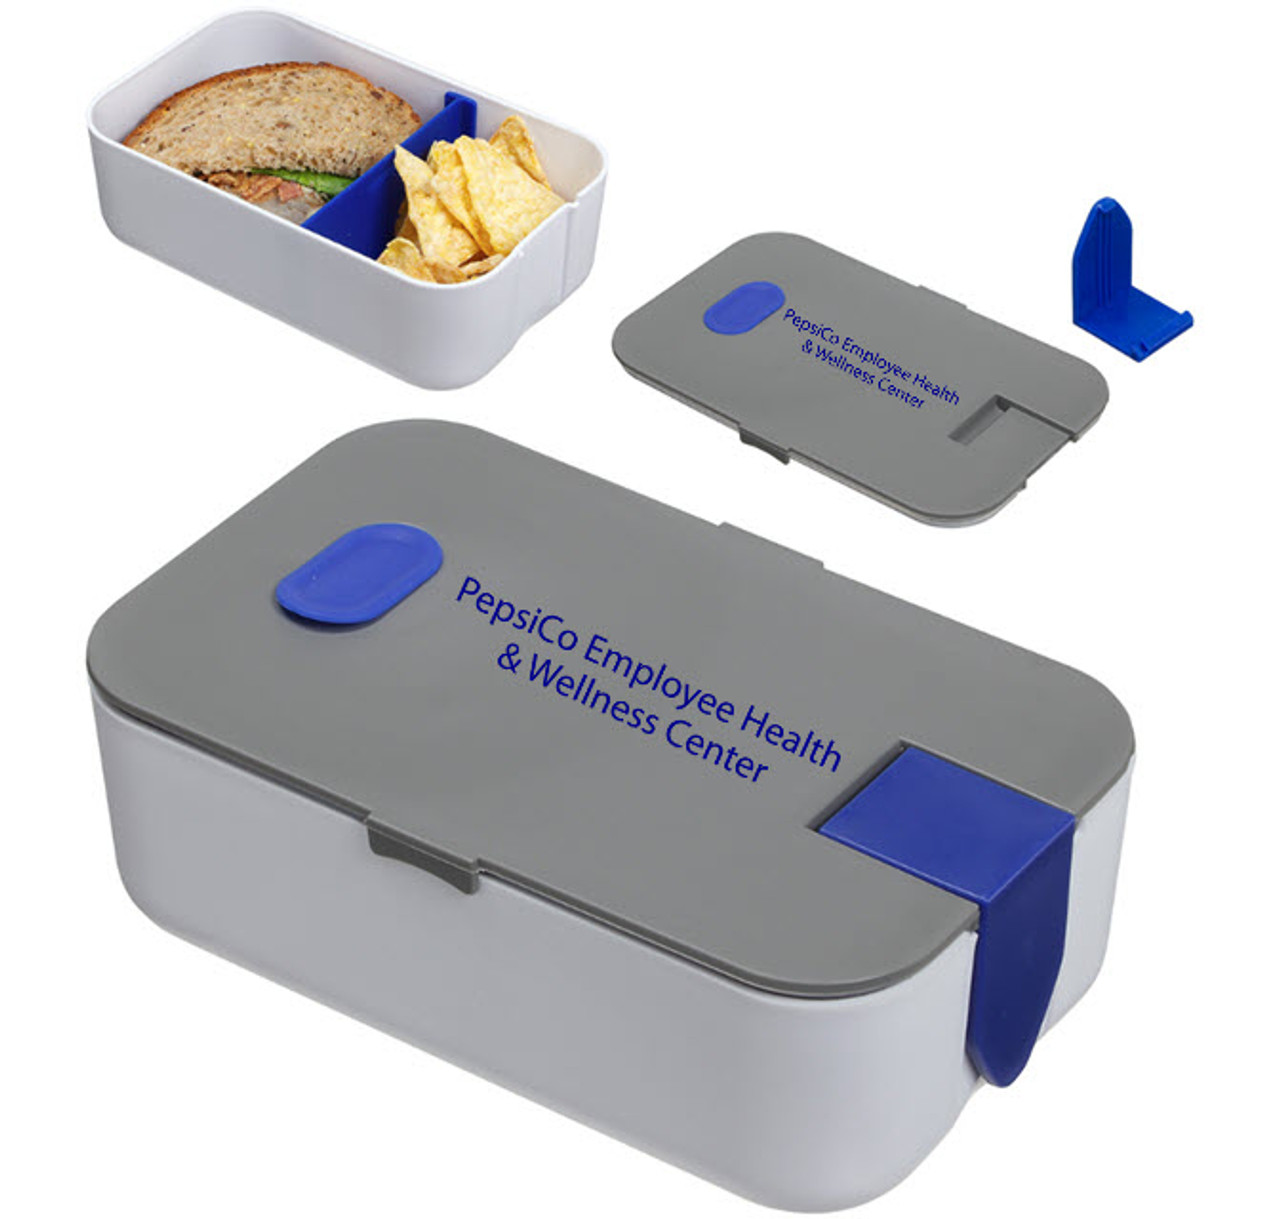 Adjustable Lunch Box